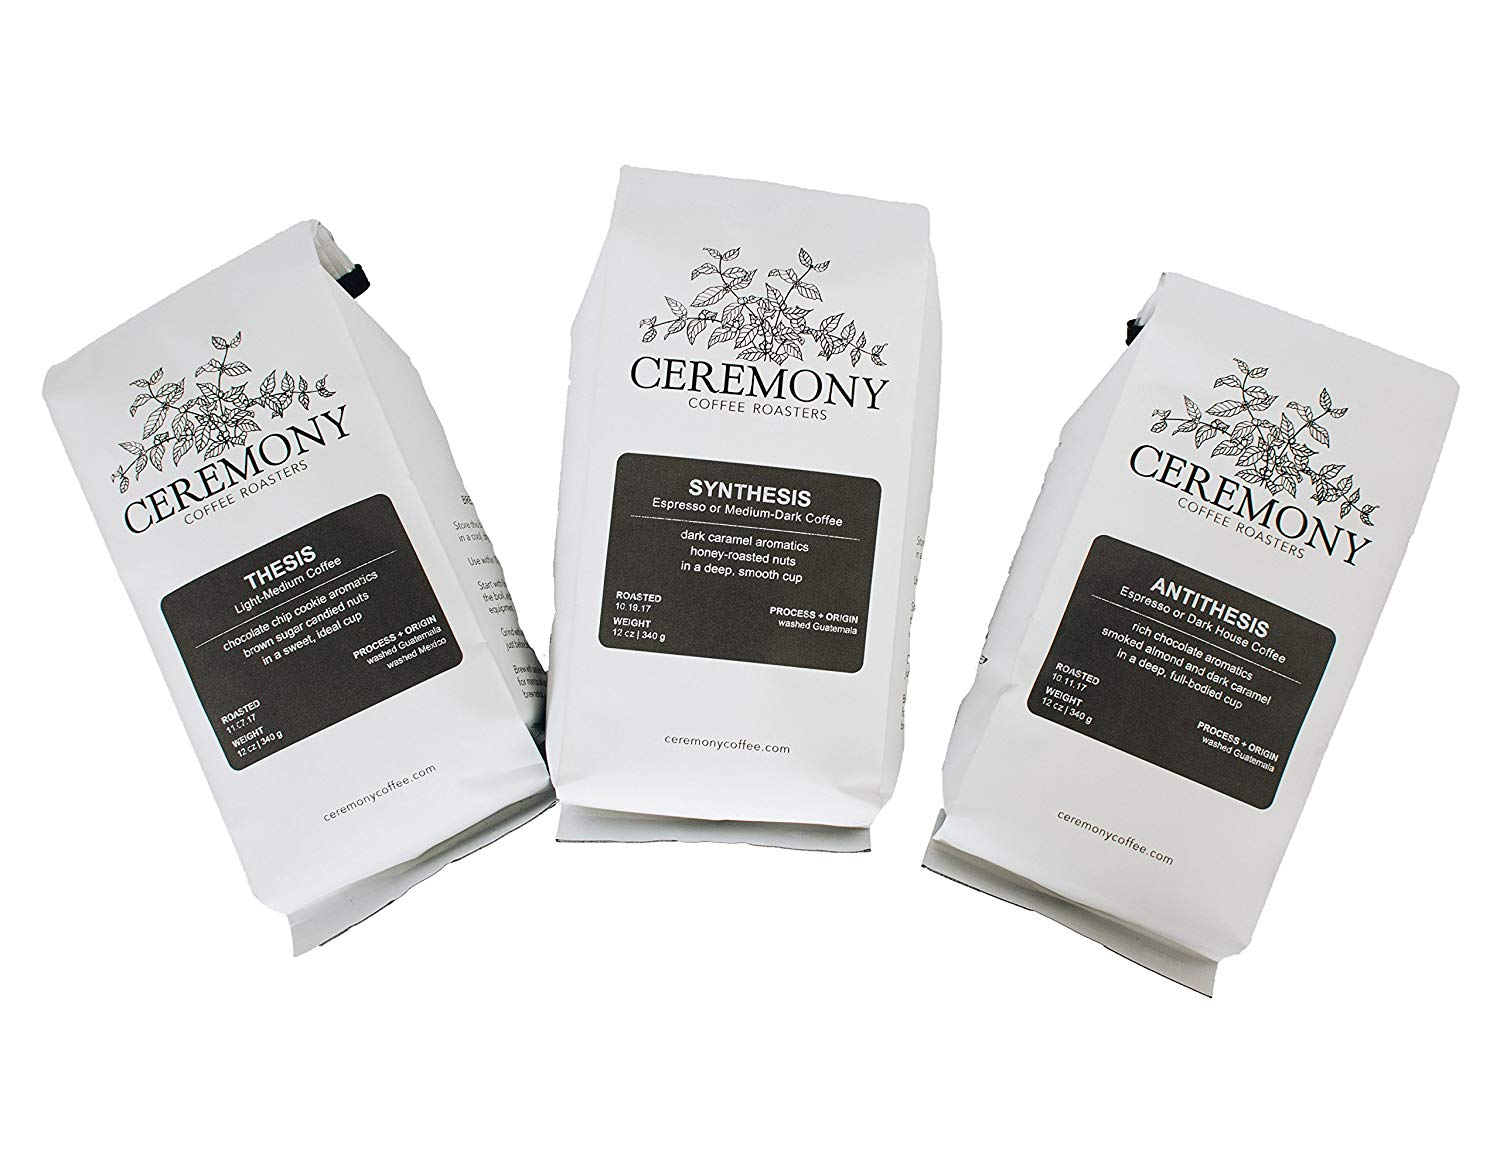 Ceremony Coffee Roasters - House Coffees Roast Variety Pack - Specialty Whole Bean or Ground Coffee- 3 x 12oz bags (Whole Bean)